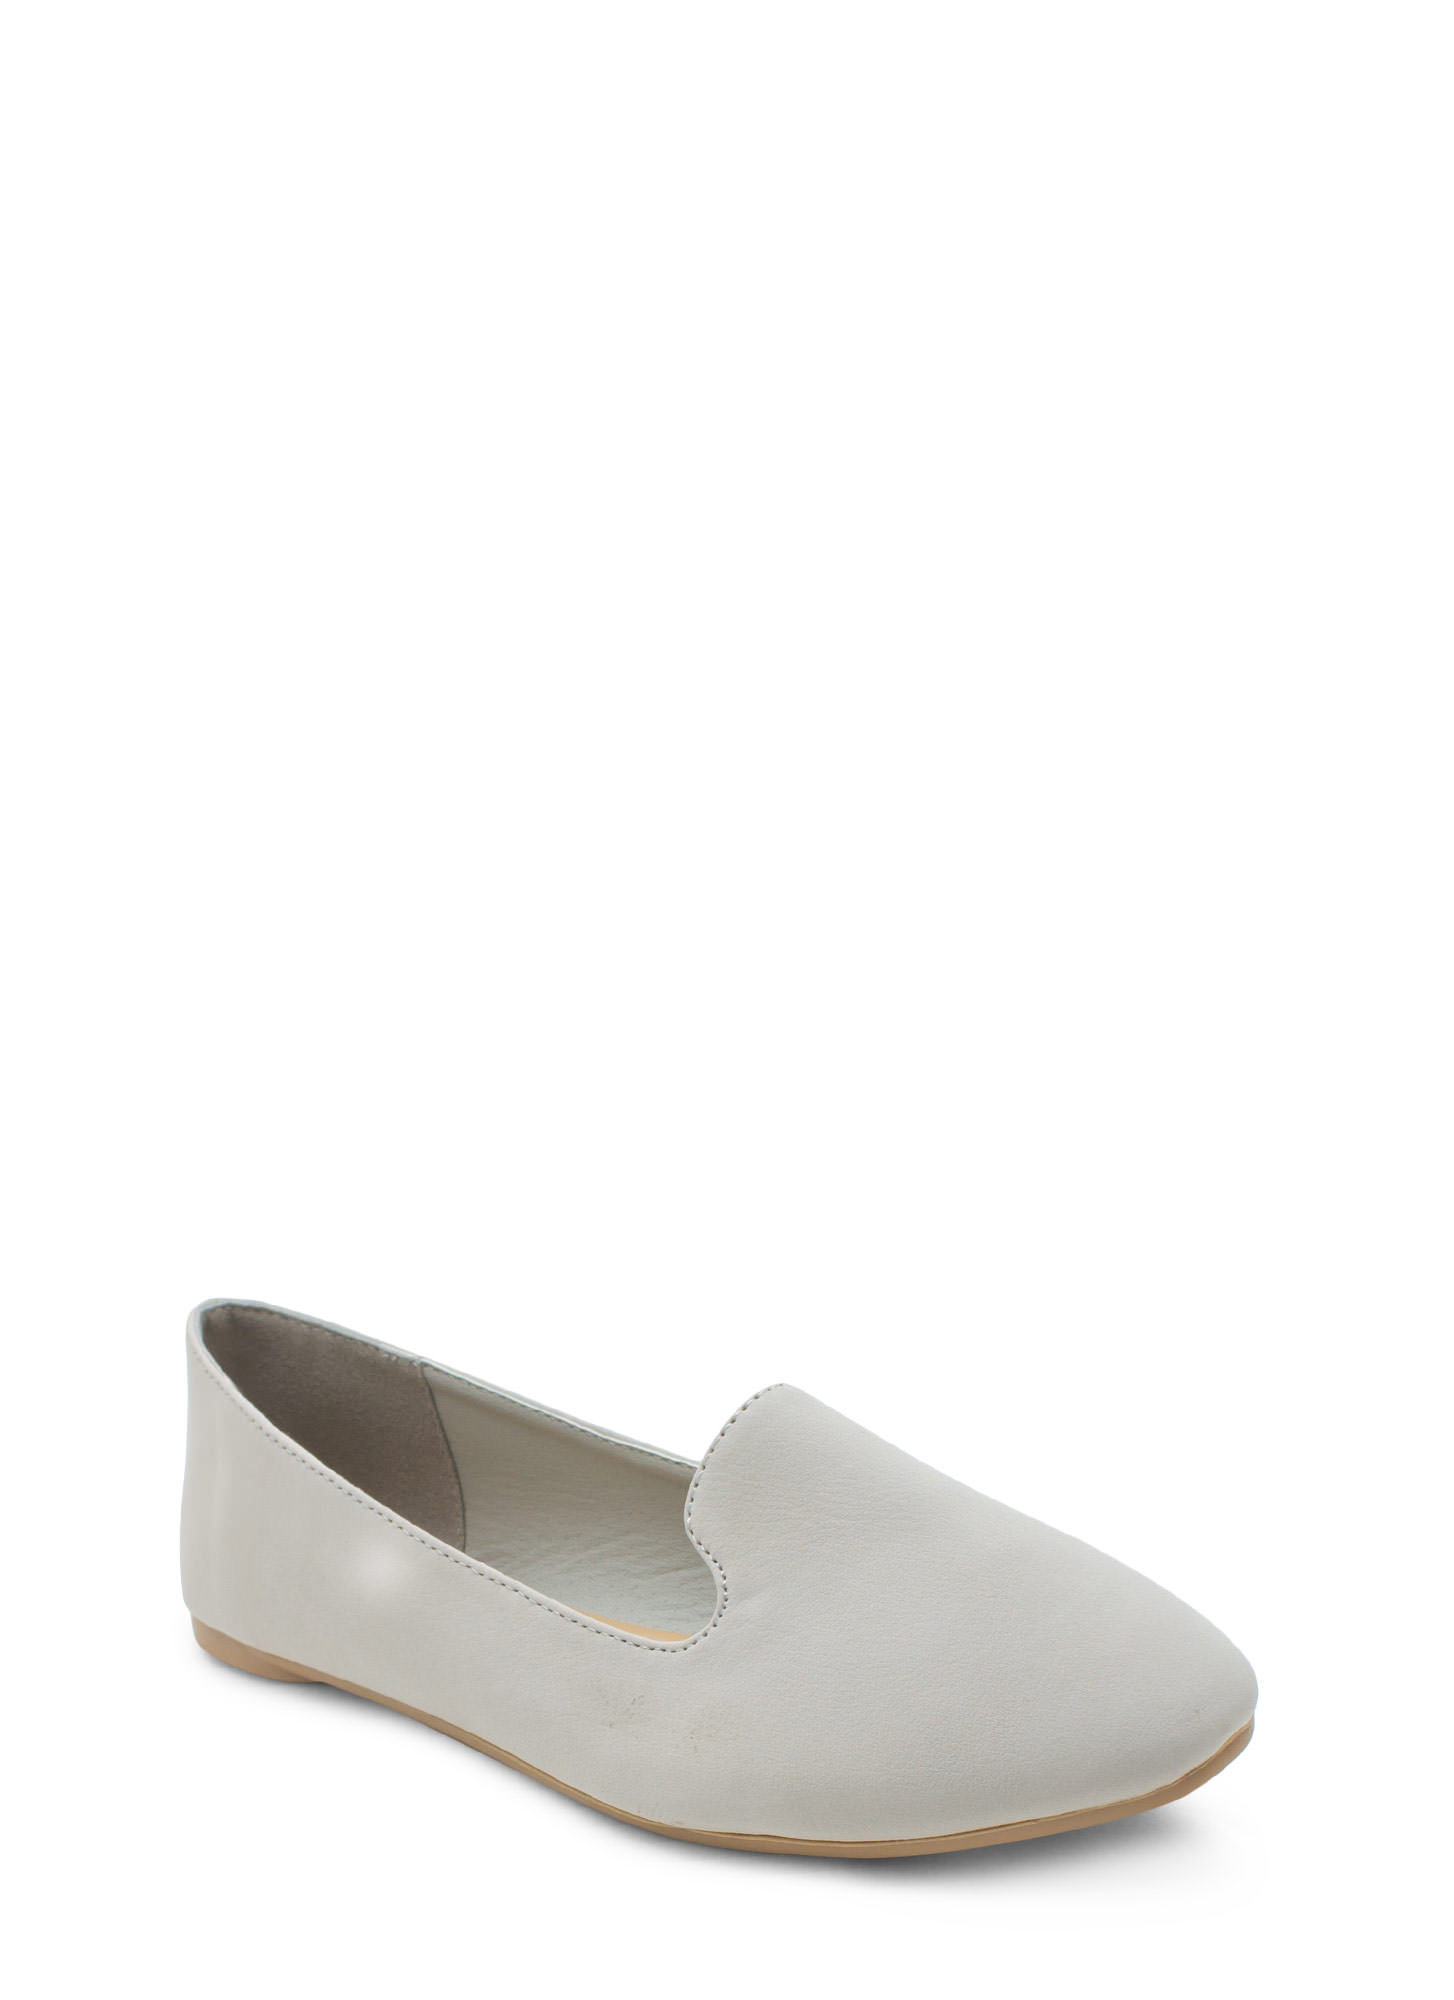 Go Plain Faux Nubuck Smoking Flat LTGREY